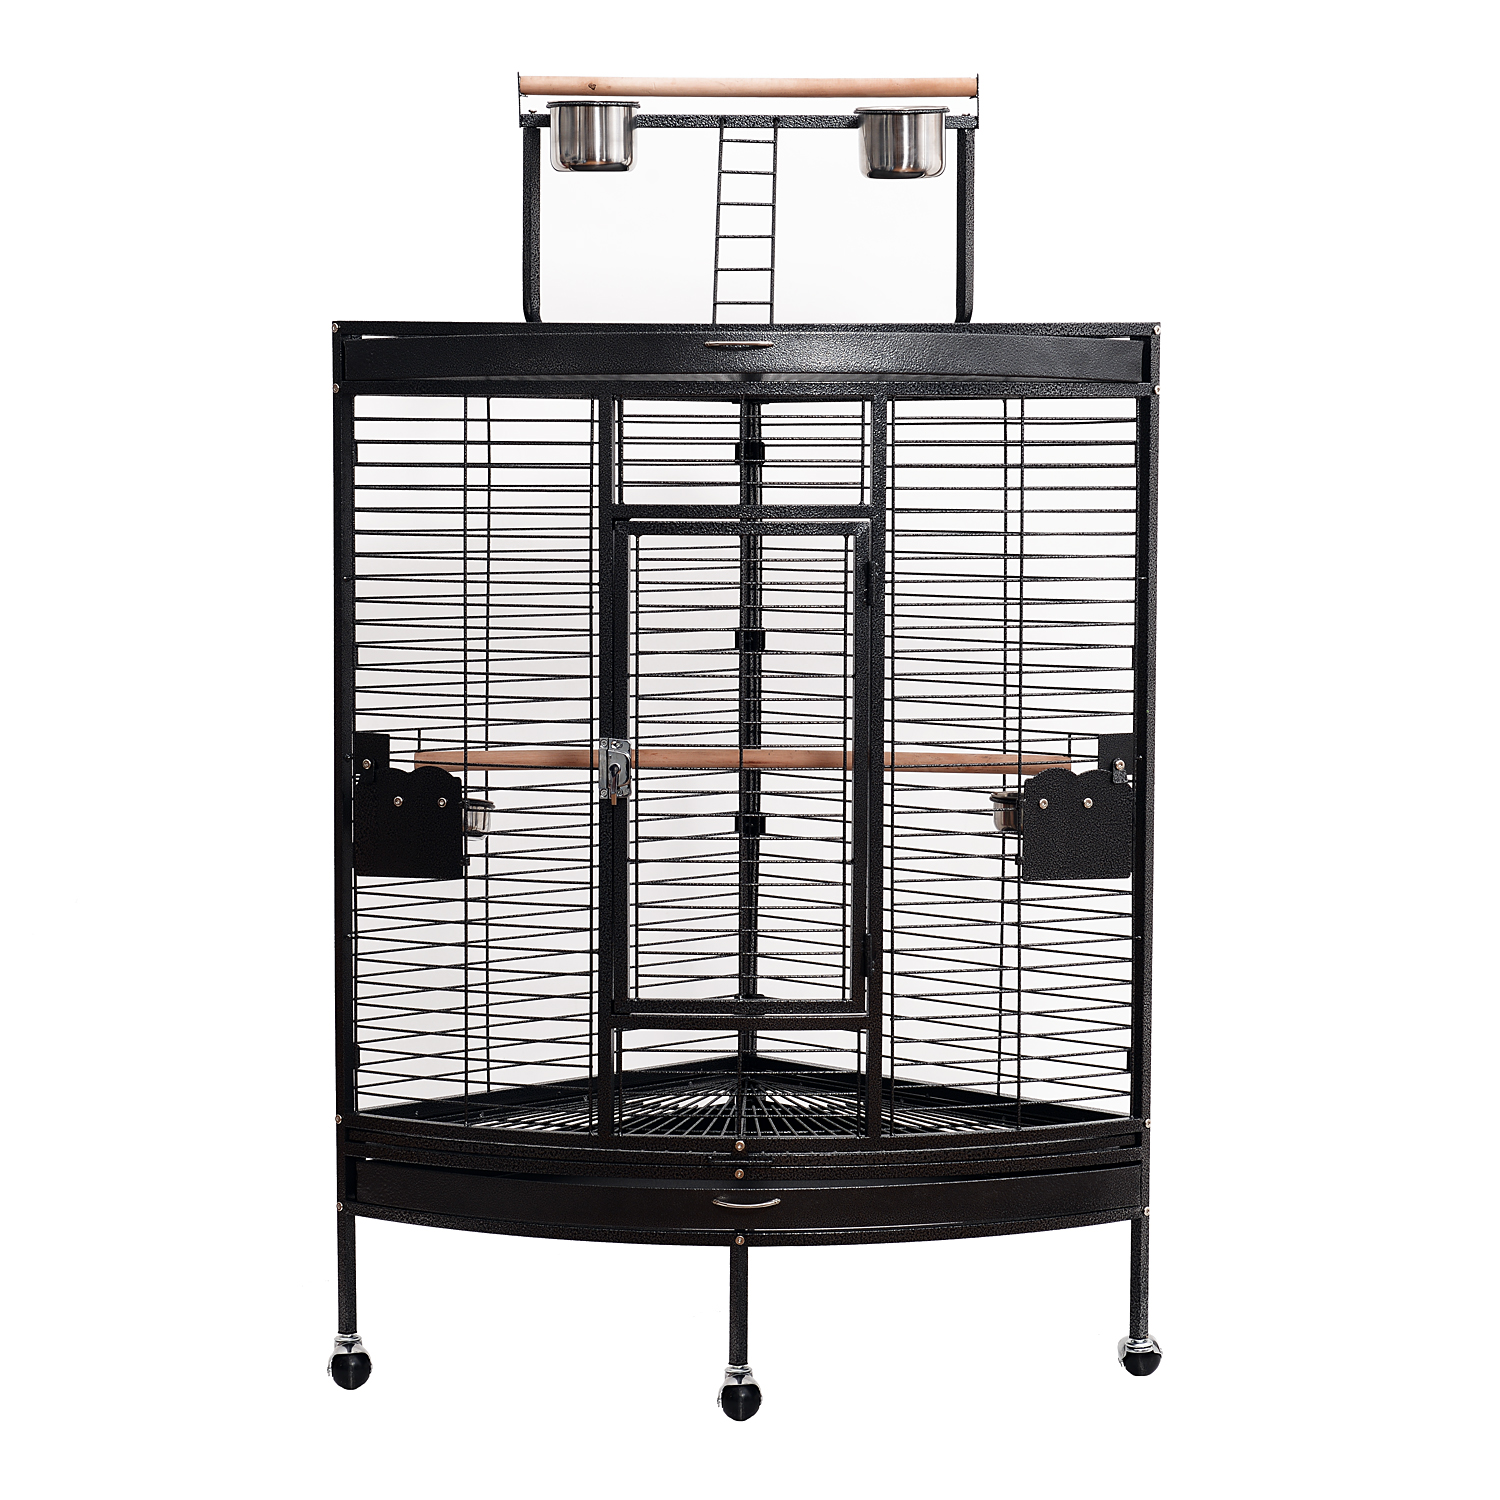 59 large corner parrot bird cage playtop stand finch macaws aviary pet supply ebay. Black Bedroom Furniture Sets. Home Design Ideas